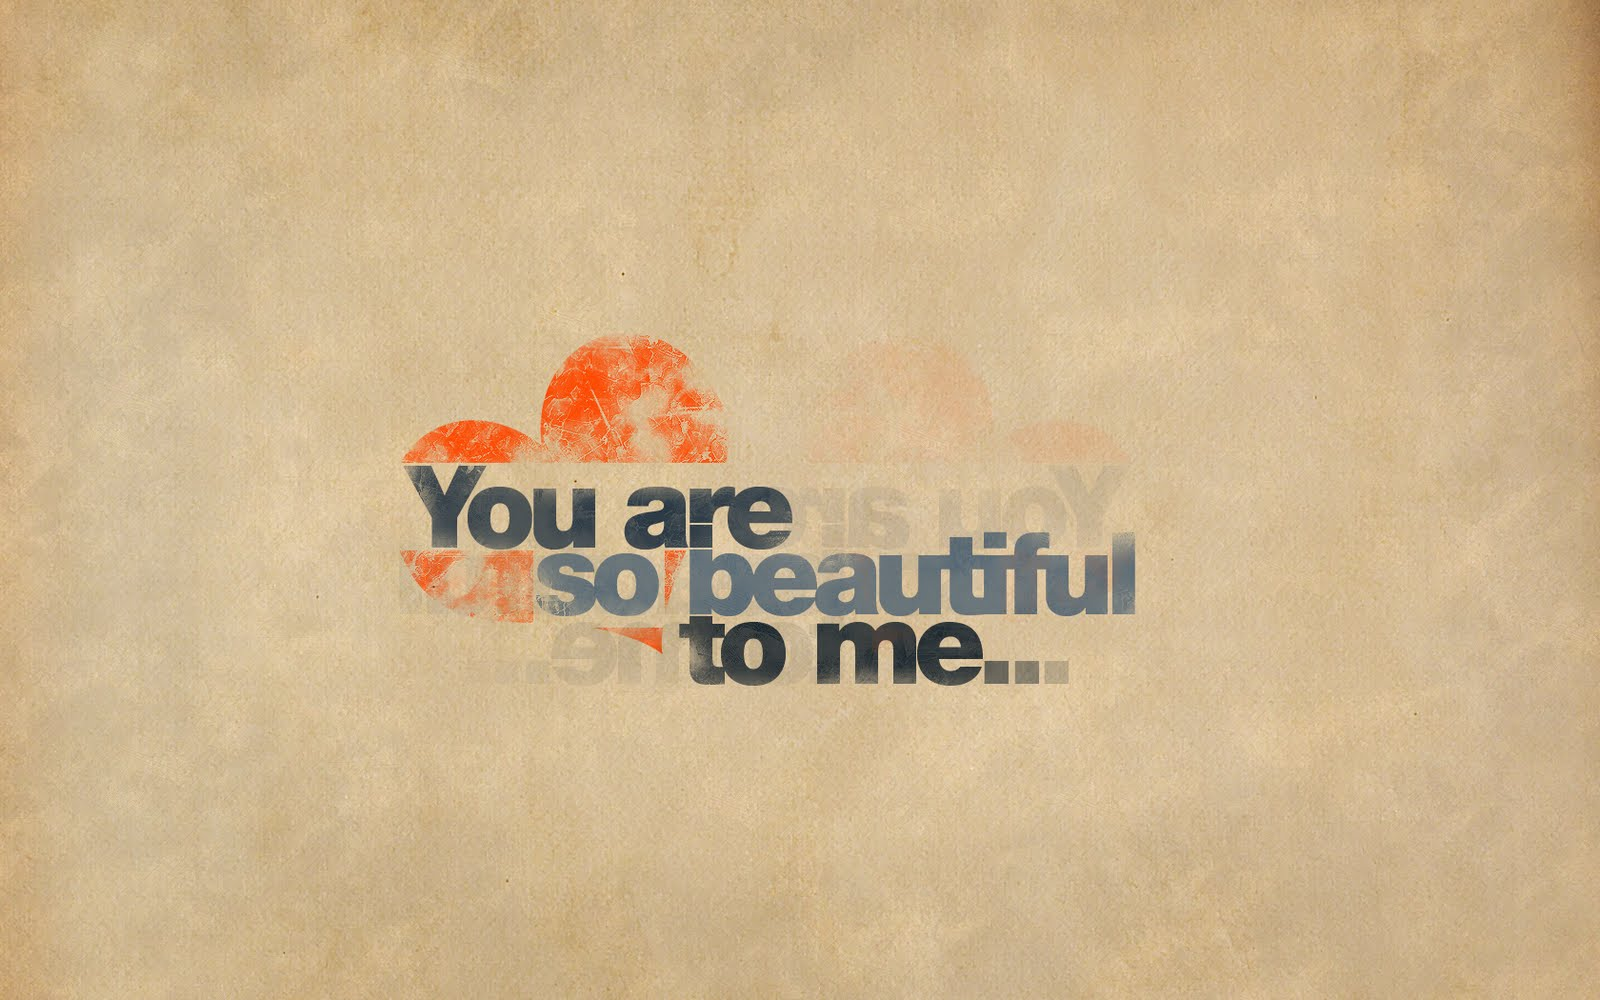 You Are So Beautiful To Me HD Love Wallpaper